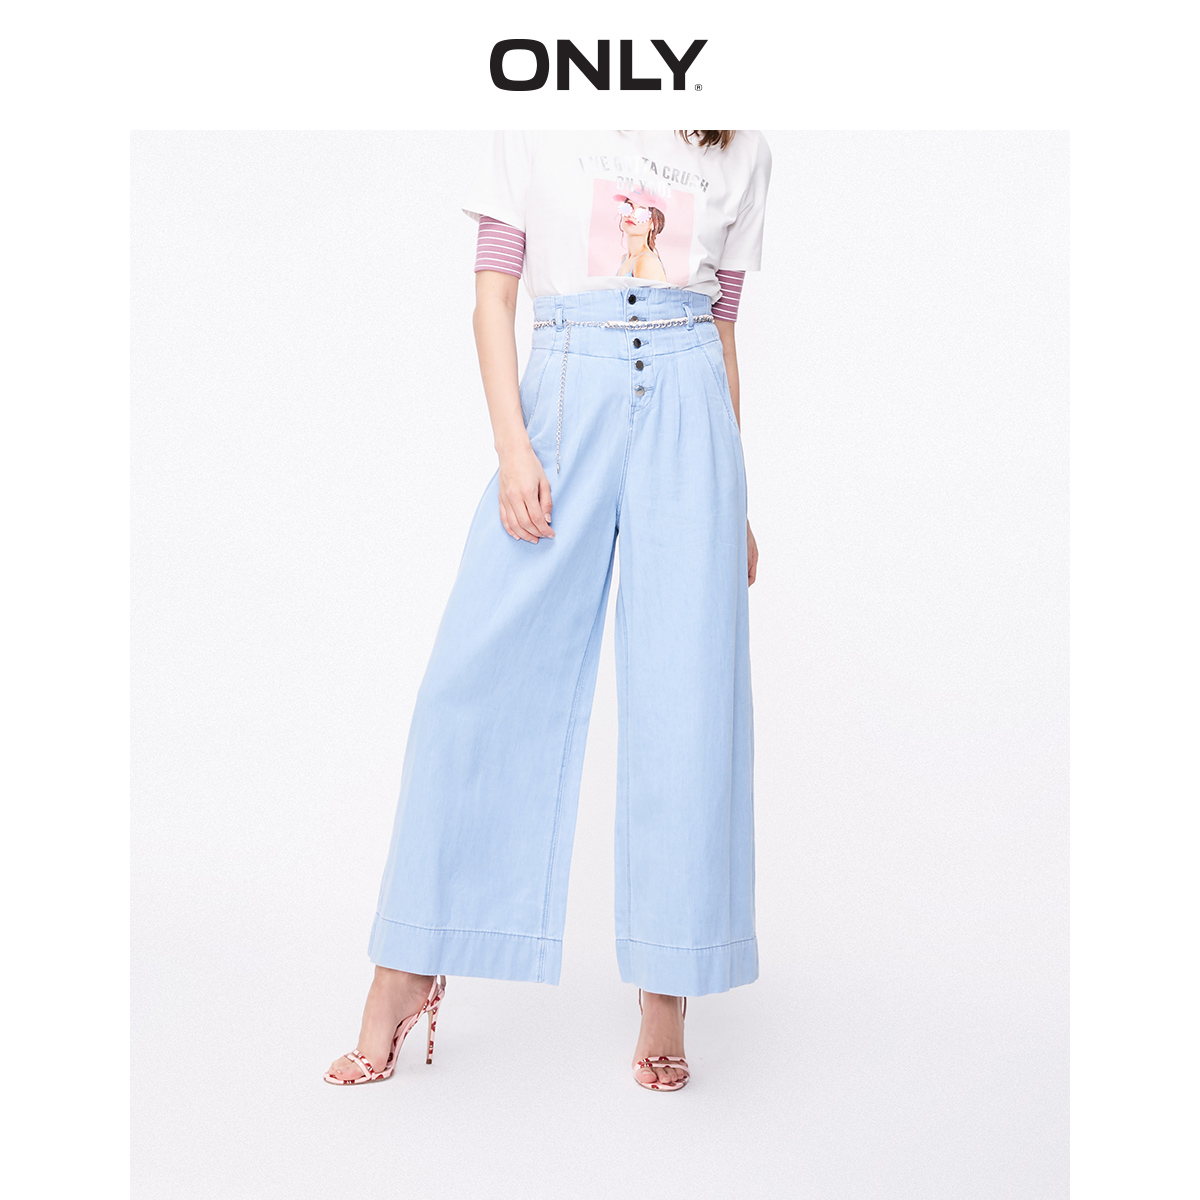 ONLY Women's Loose Fit High-rise Wide-leg Light Color Jeans | 119232503